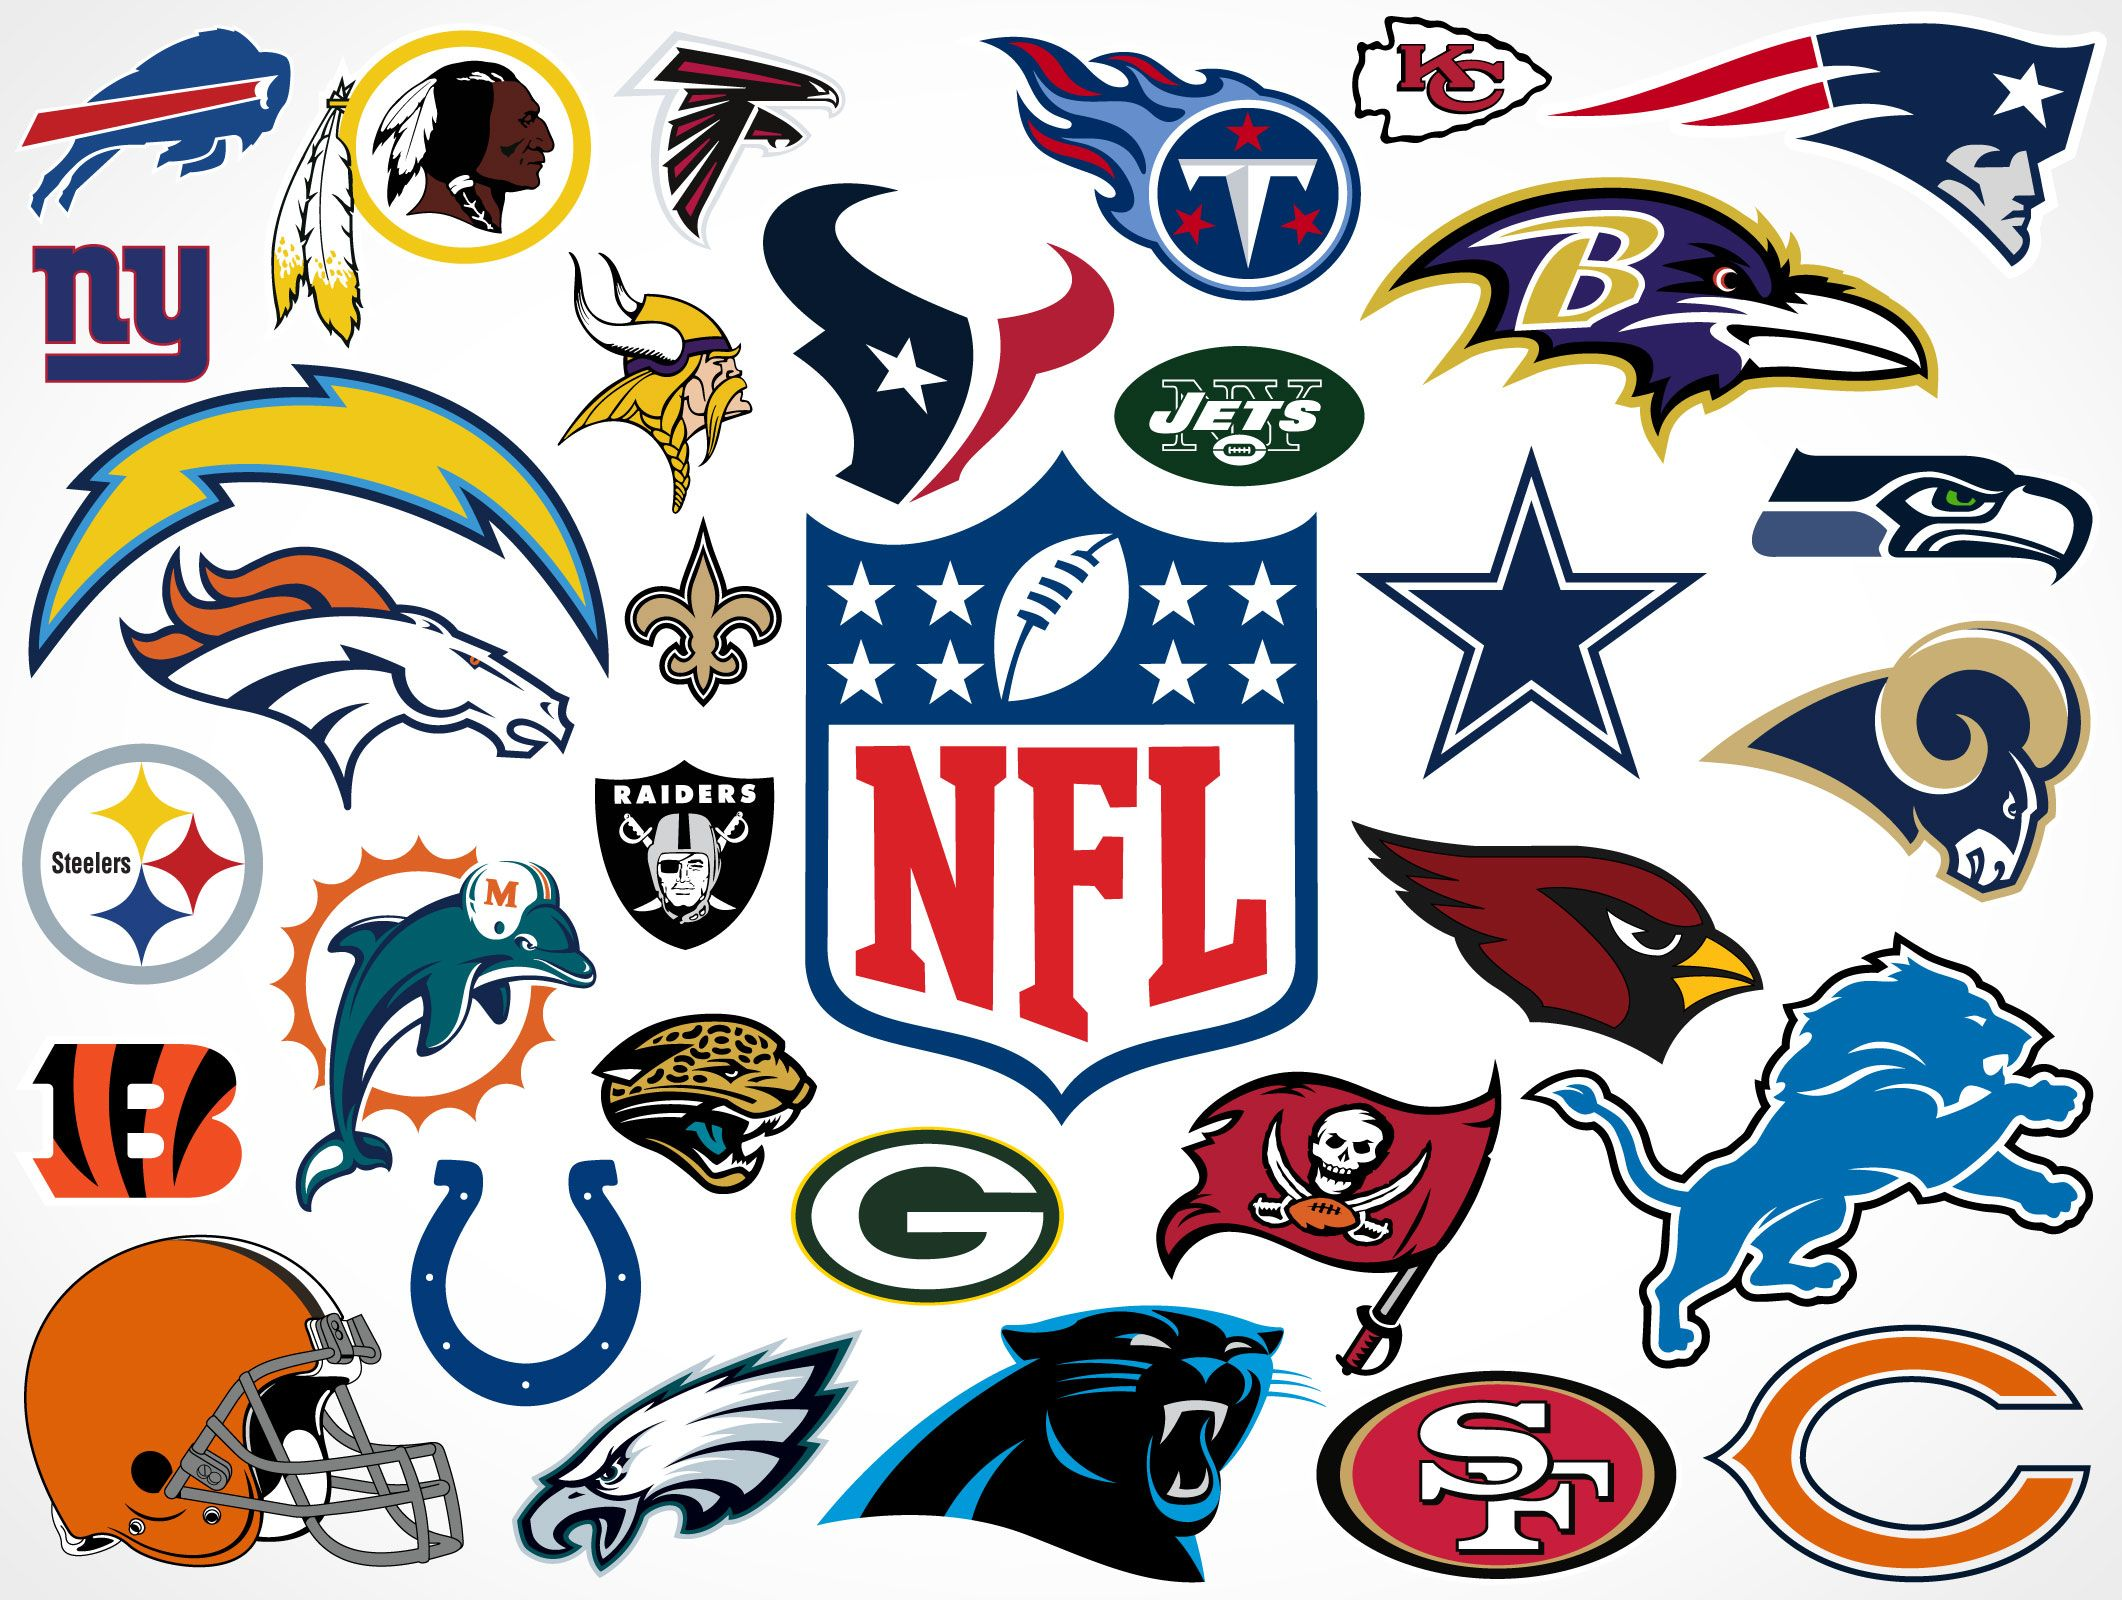 poster of all nfl teams - Google Search | Teams and Logos posters ...